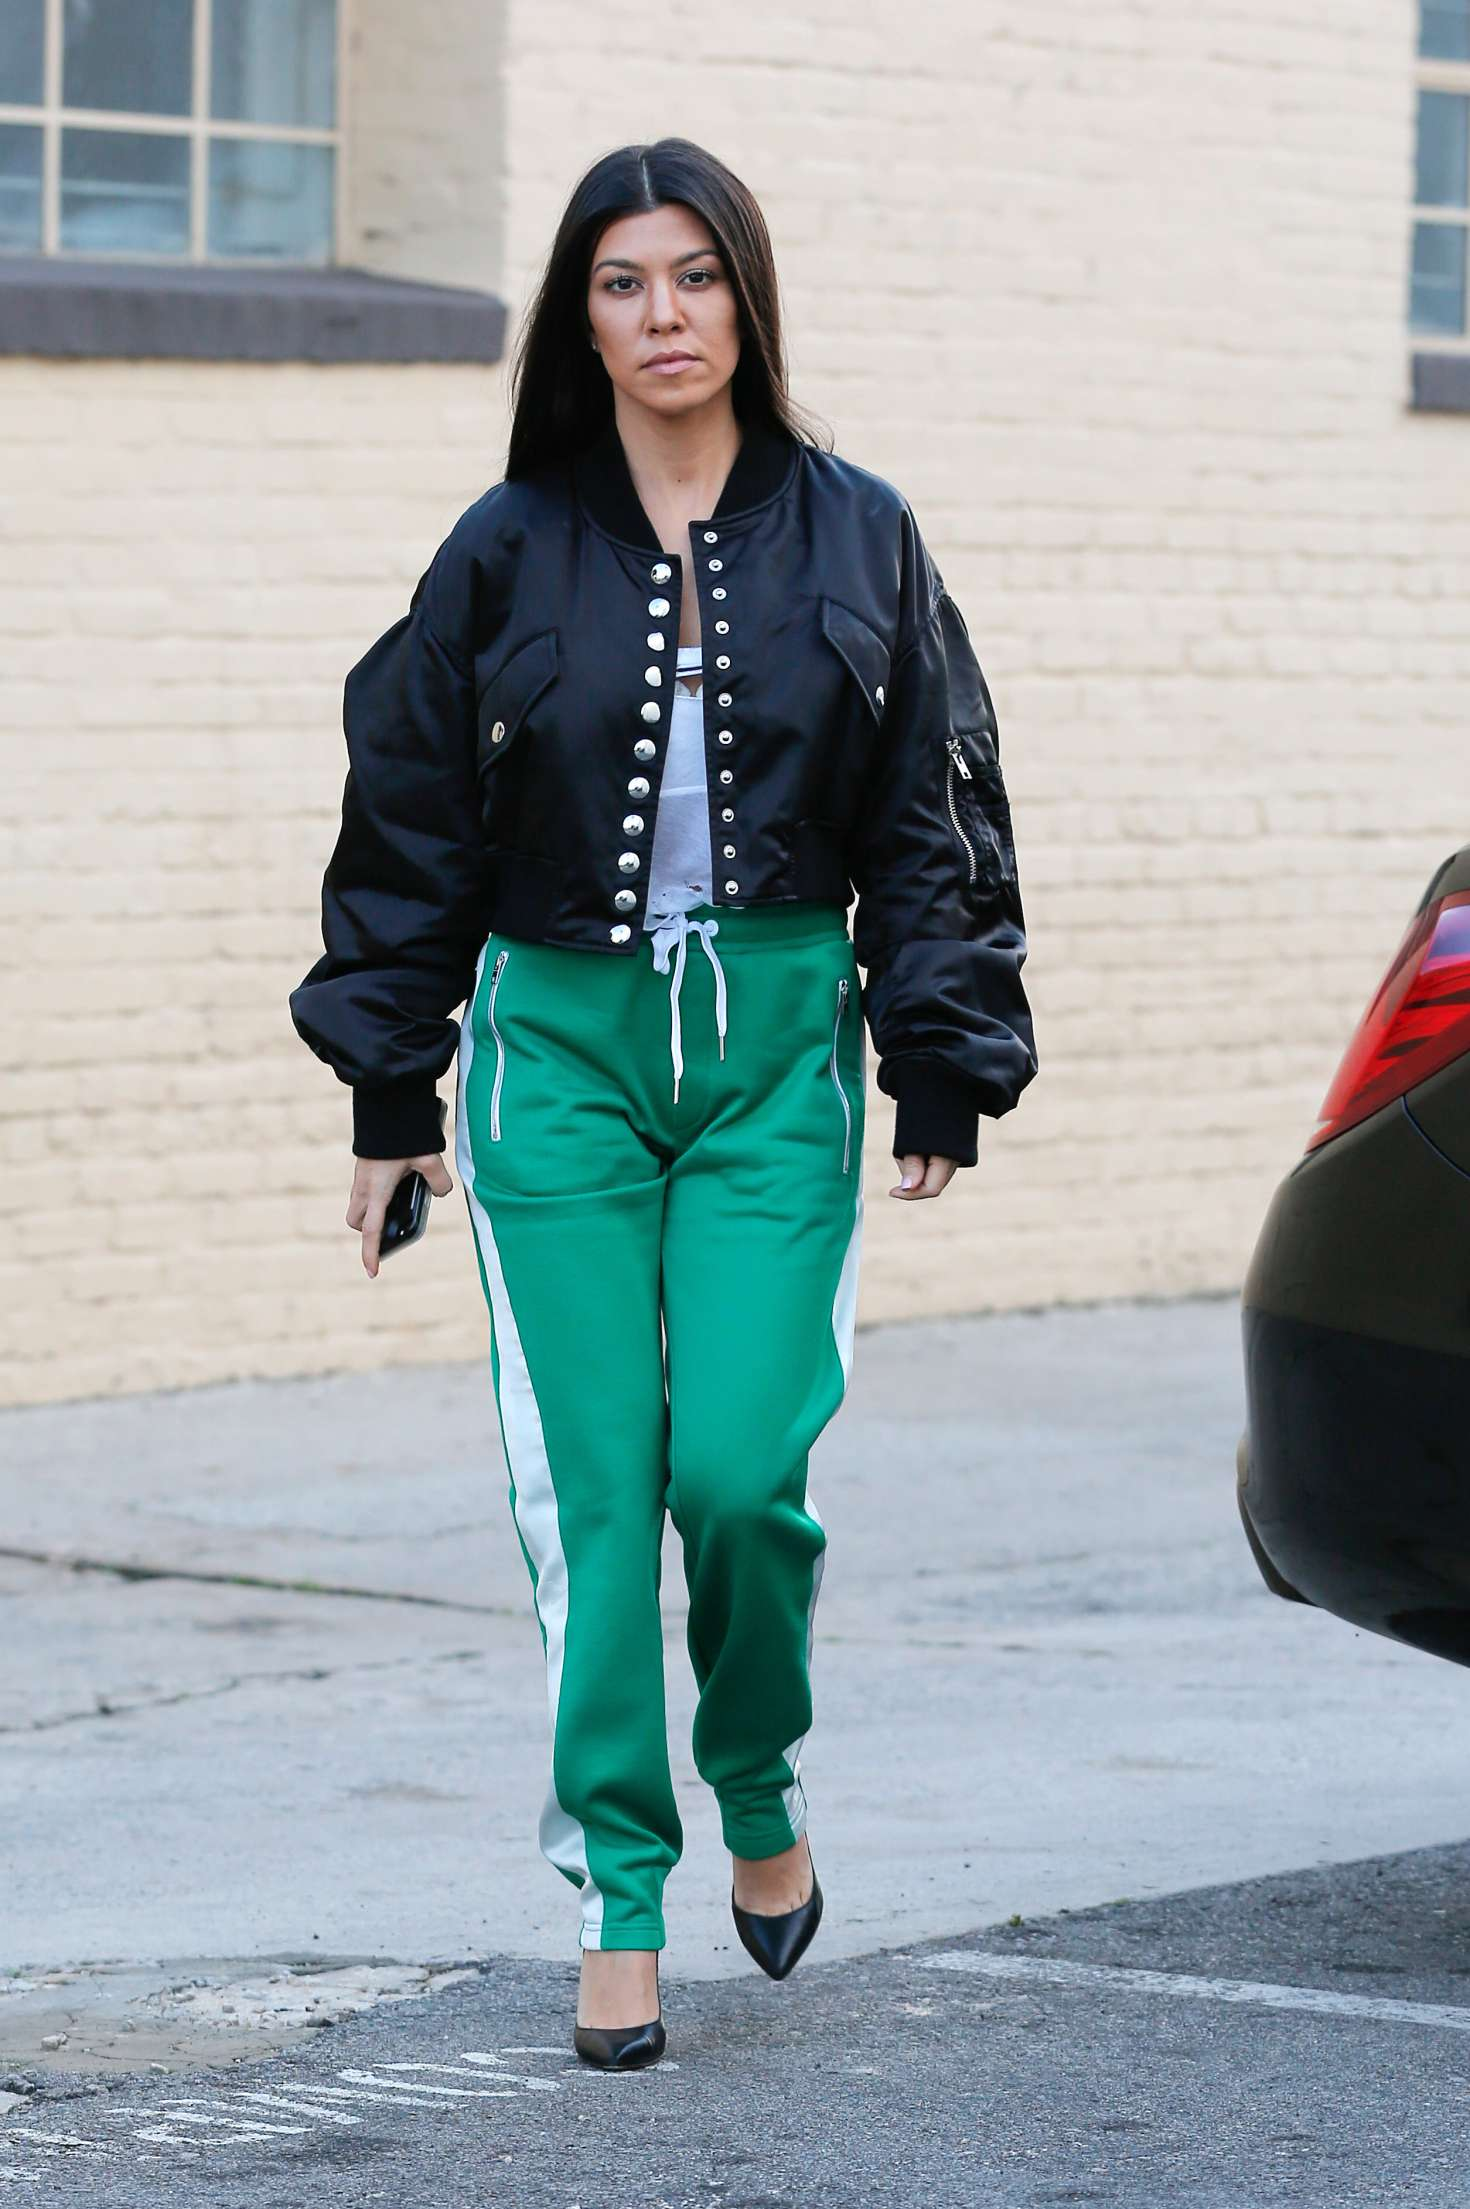 Kourtney Kardashian In Green Street Style 08 Gotceleb